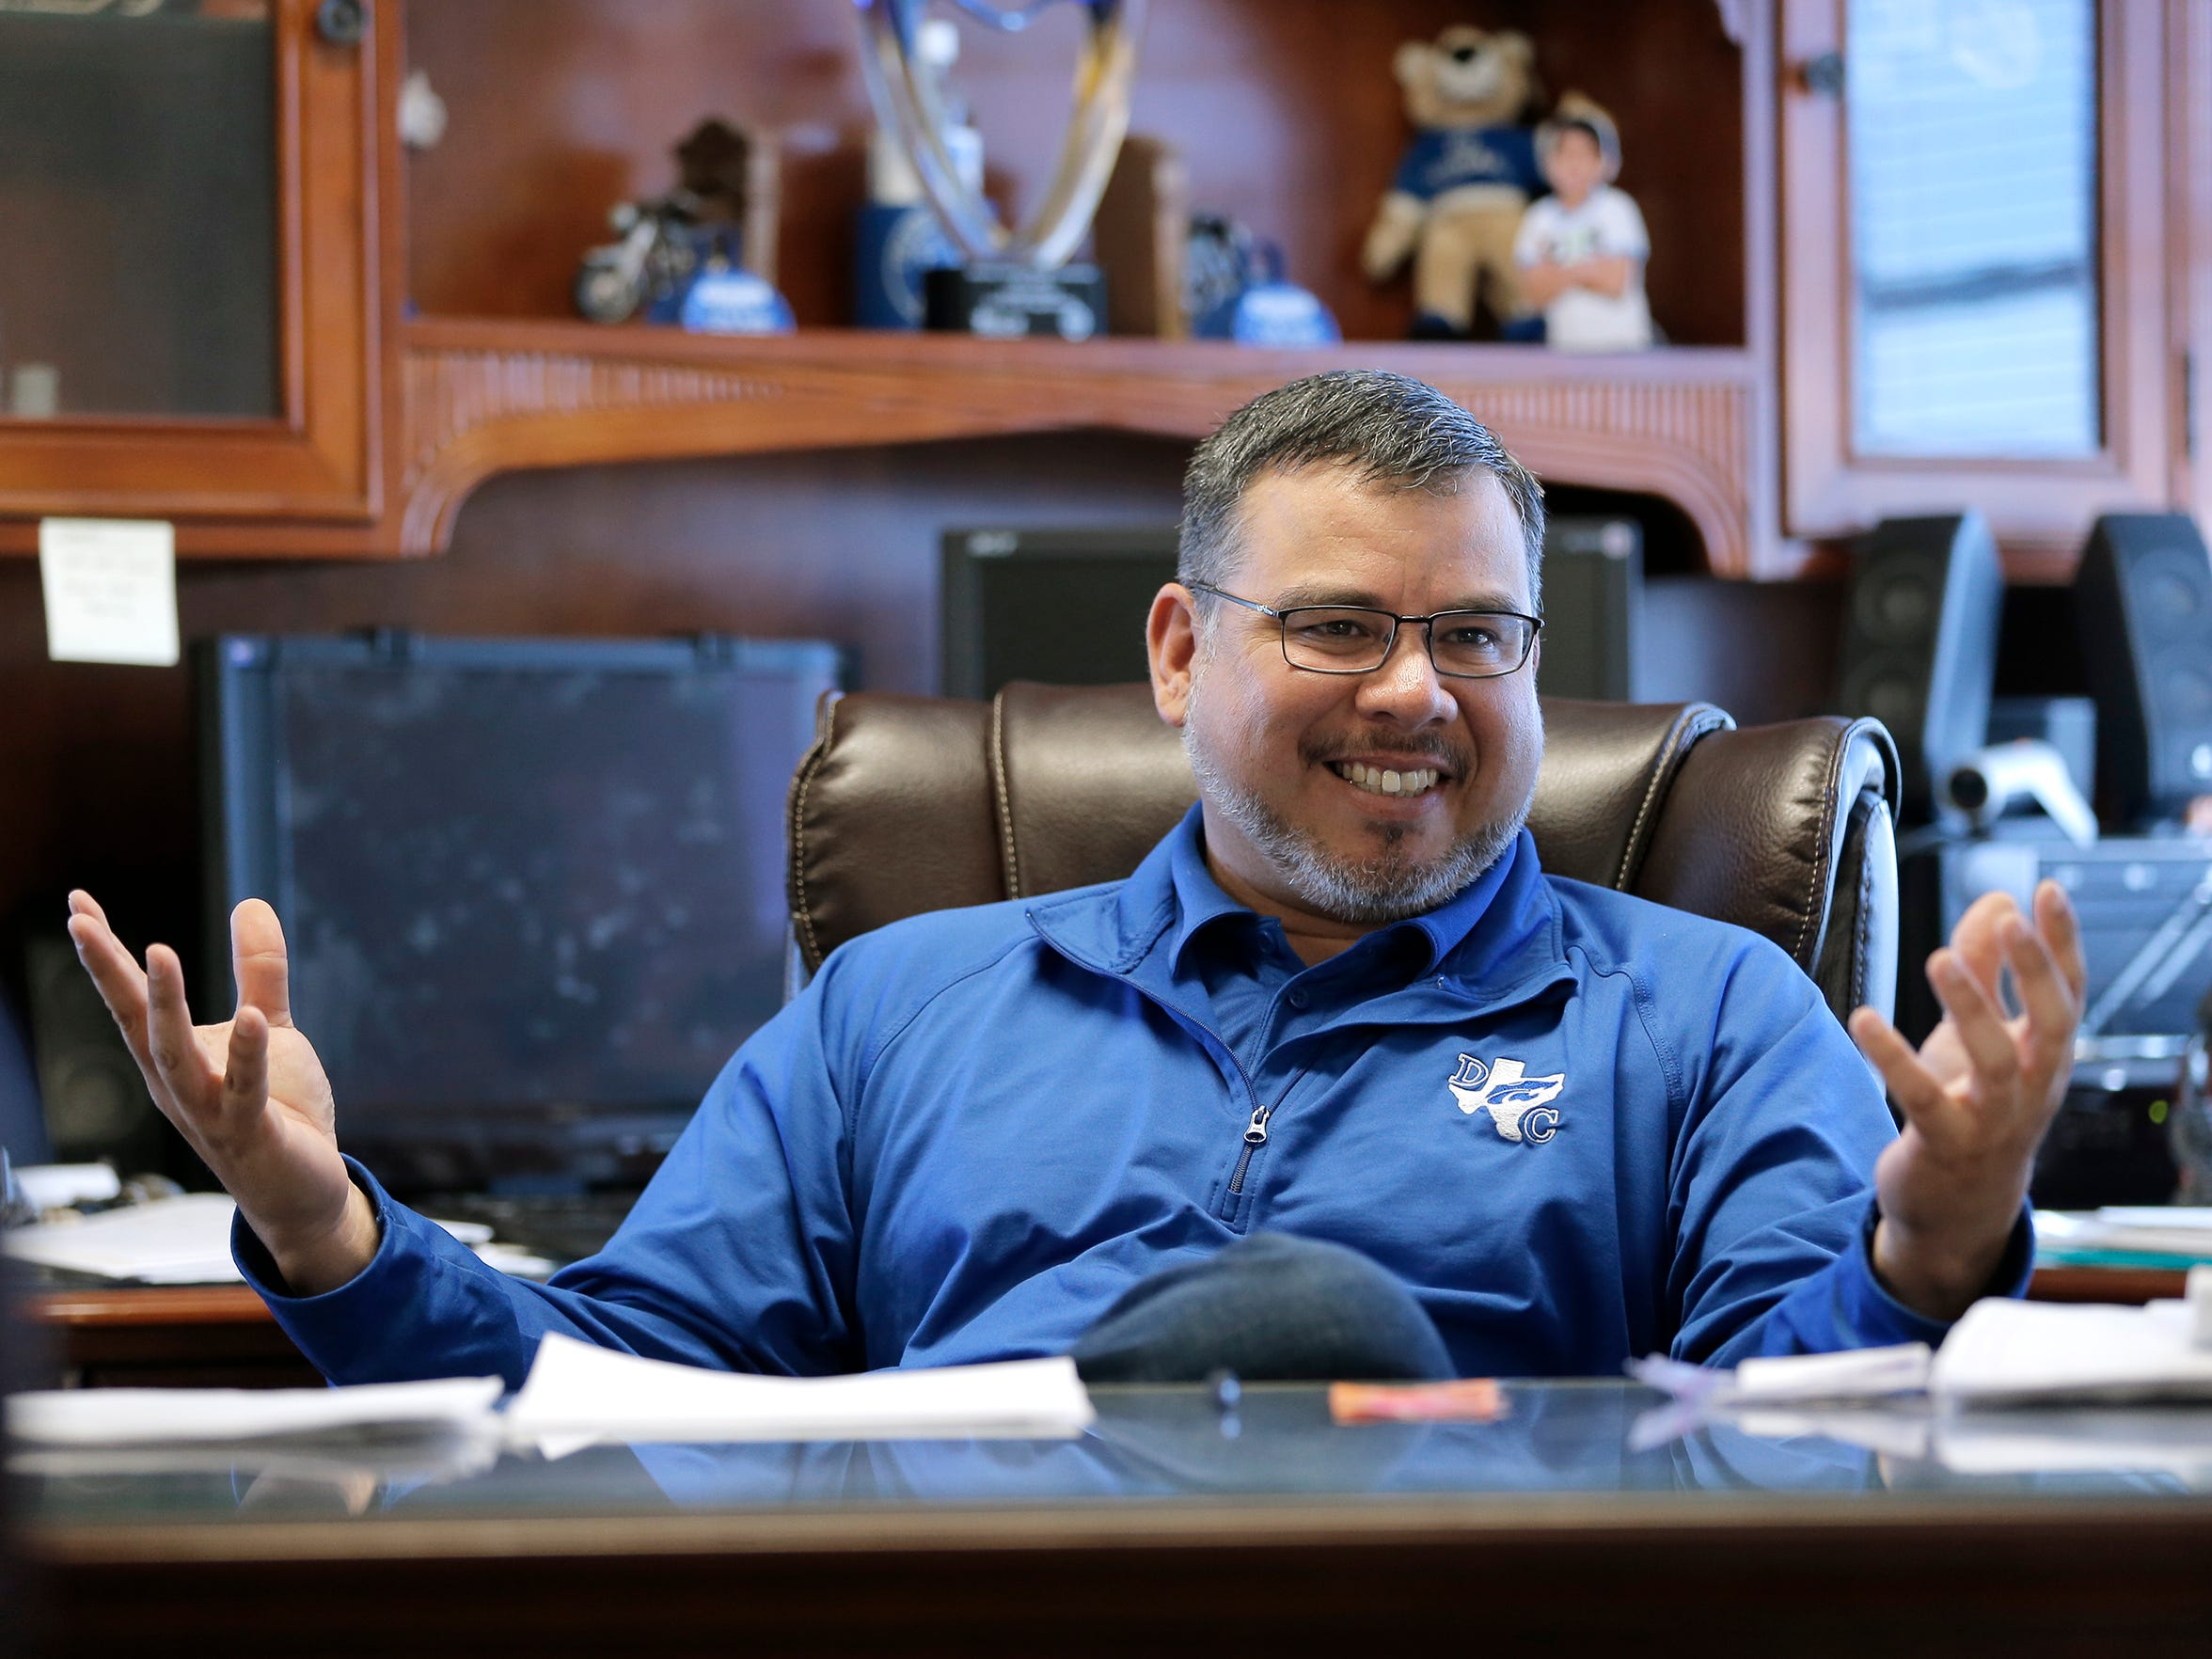 Dell City School Superintendent Fabian Gomez says he's doing everything he can with what he has to work with, but some townspeople have criticized his tactics and methods.